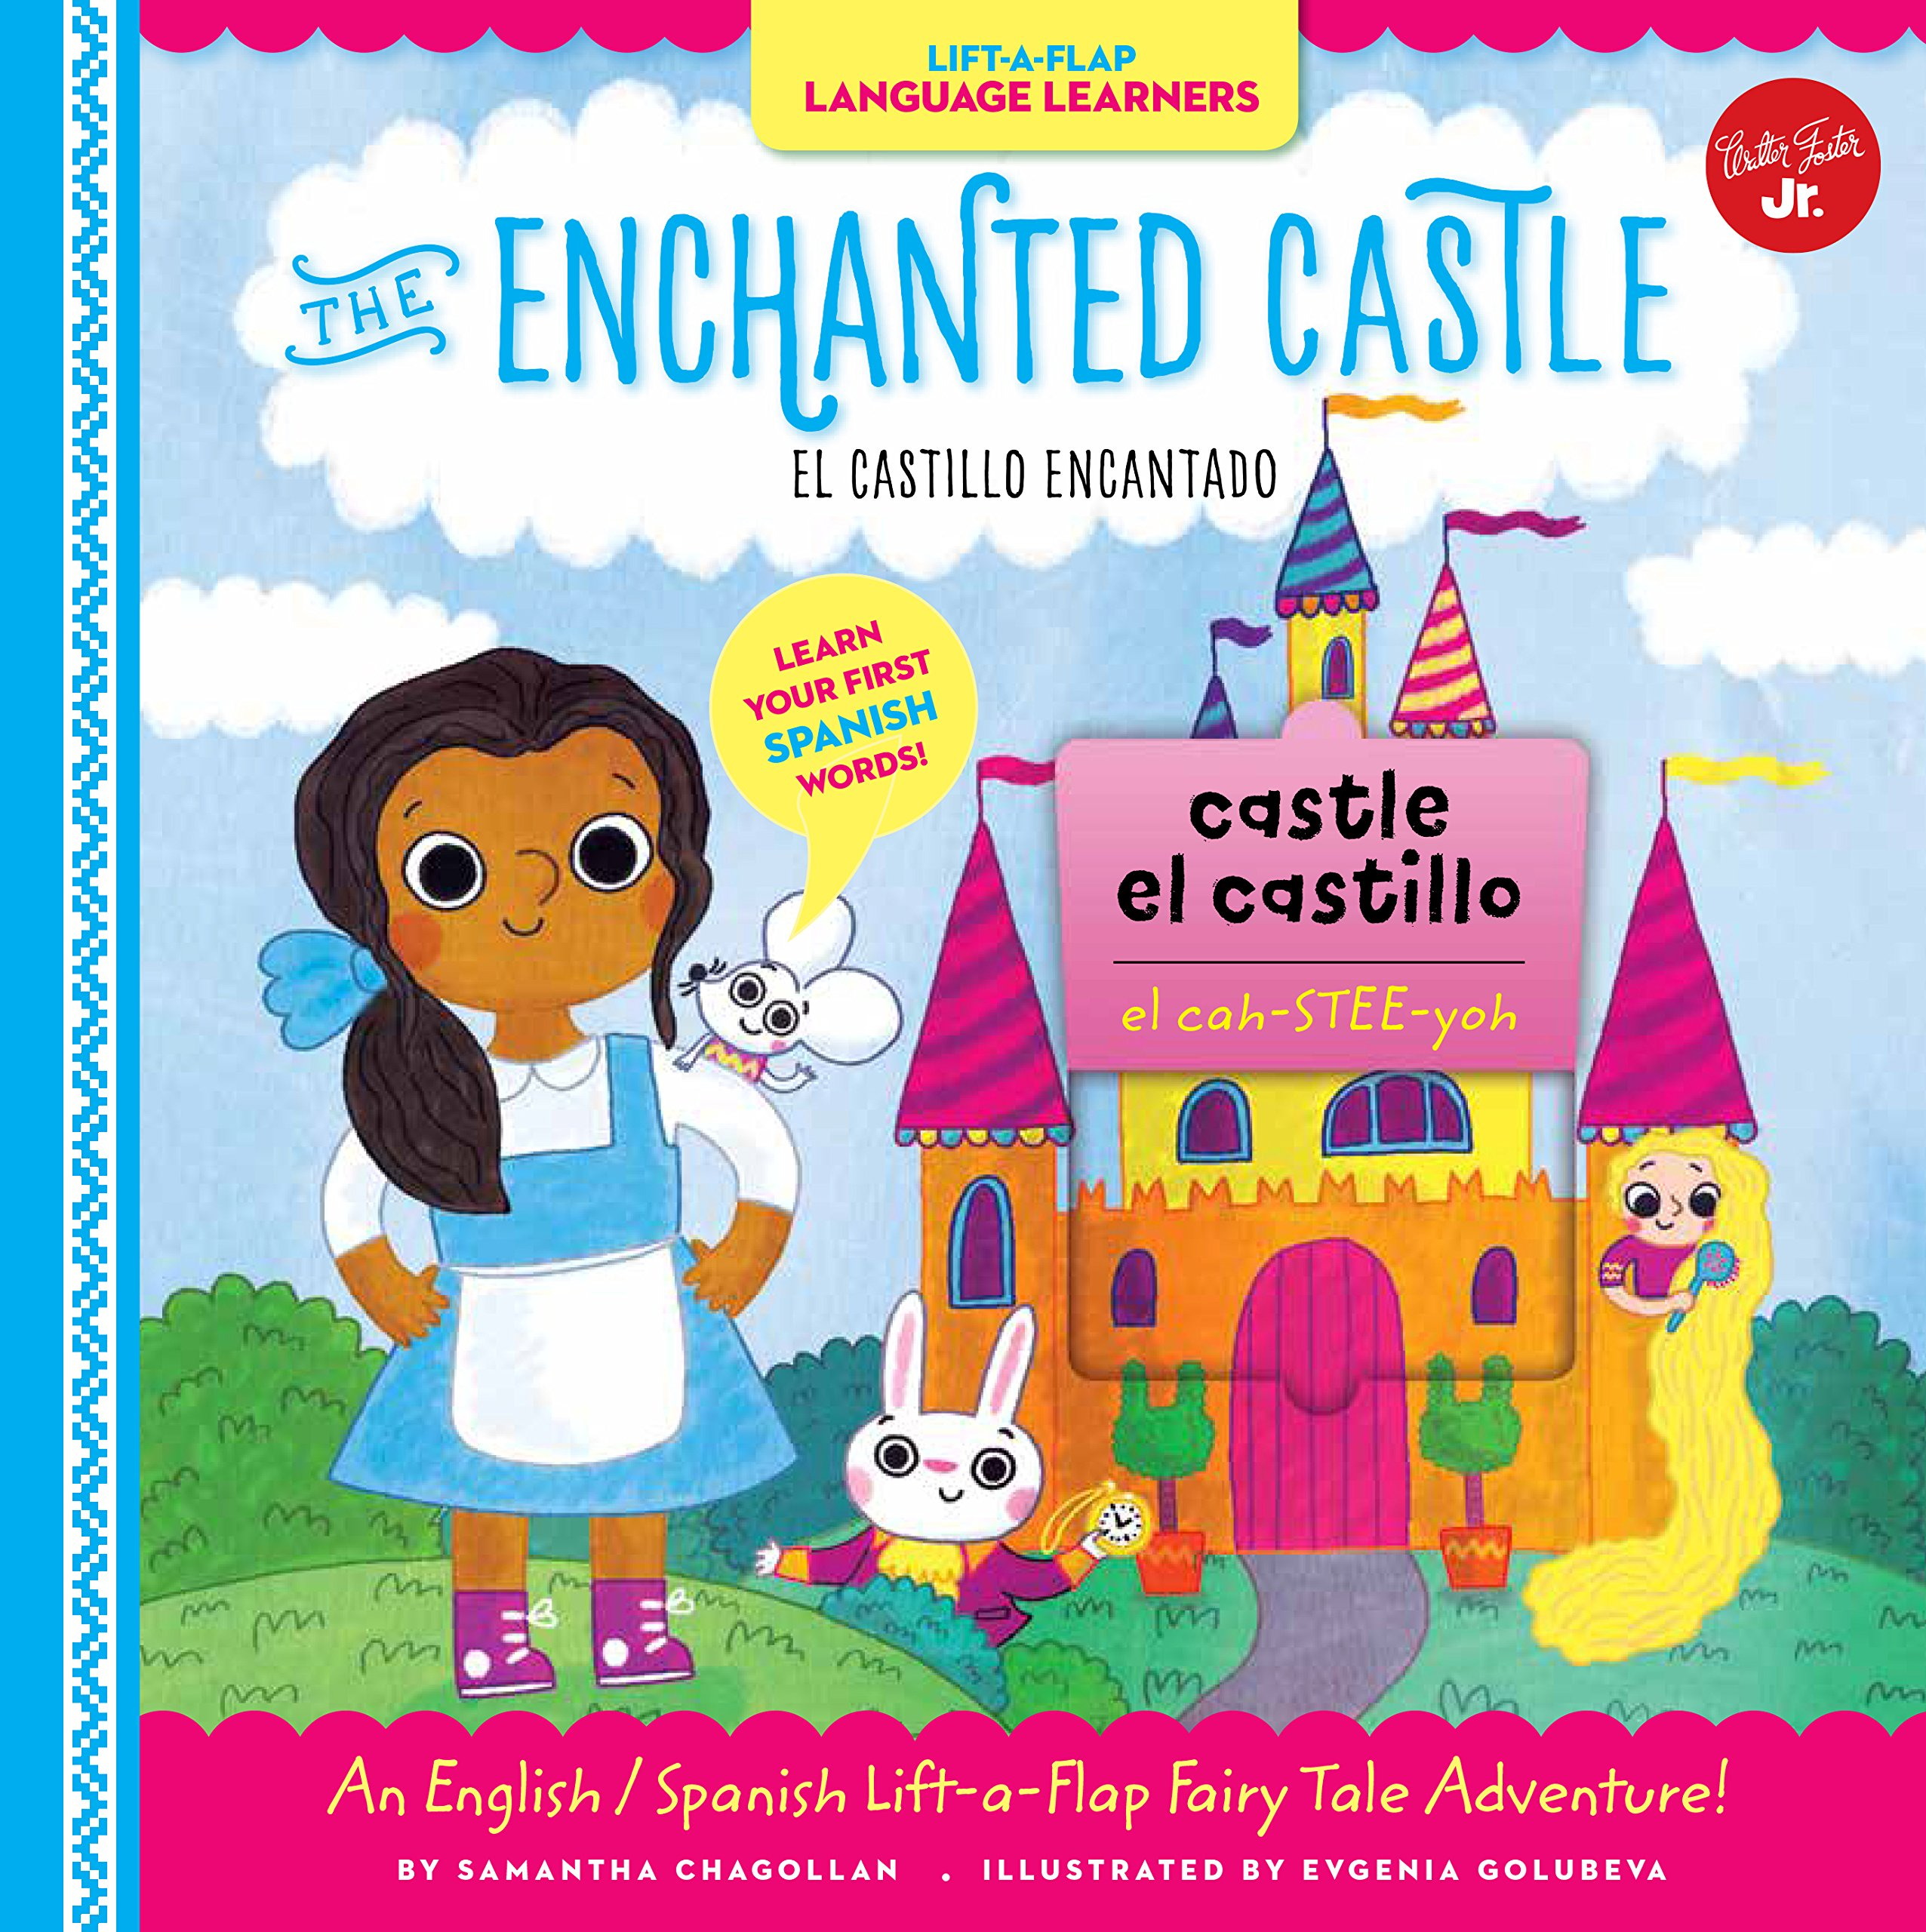 Lift-a-Flap Language Learners: The Enchanted Castle: An English/Spanish Lift-a-Flap Fairy Tale Adventure! (Spanish Edition) by Walter Foster Jr